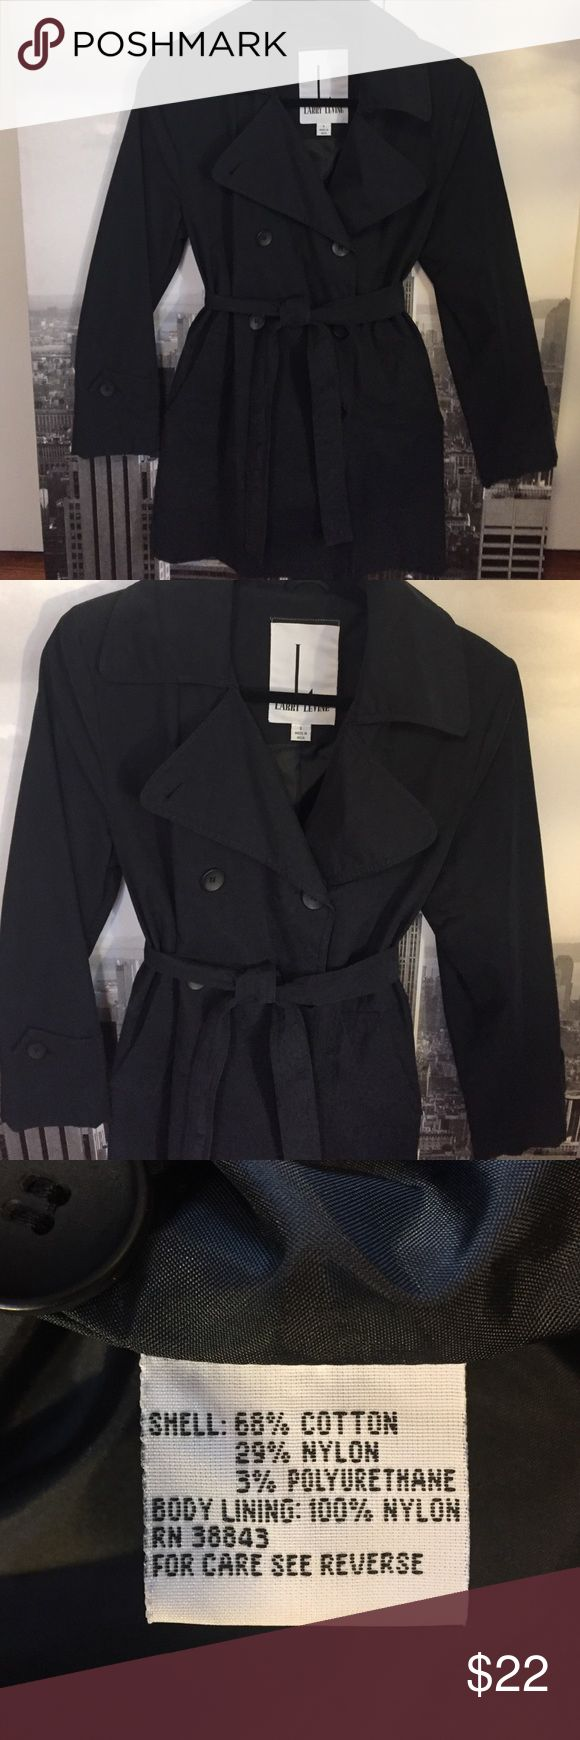 Larry Levine woman's trench coat, size Small Very cute Larry Levine trench, no hood but pockets and a cute belt. This is a lightweight trench for milder rain days. Larry Levine Jackets & Coats Trench Coats